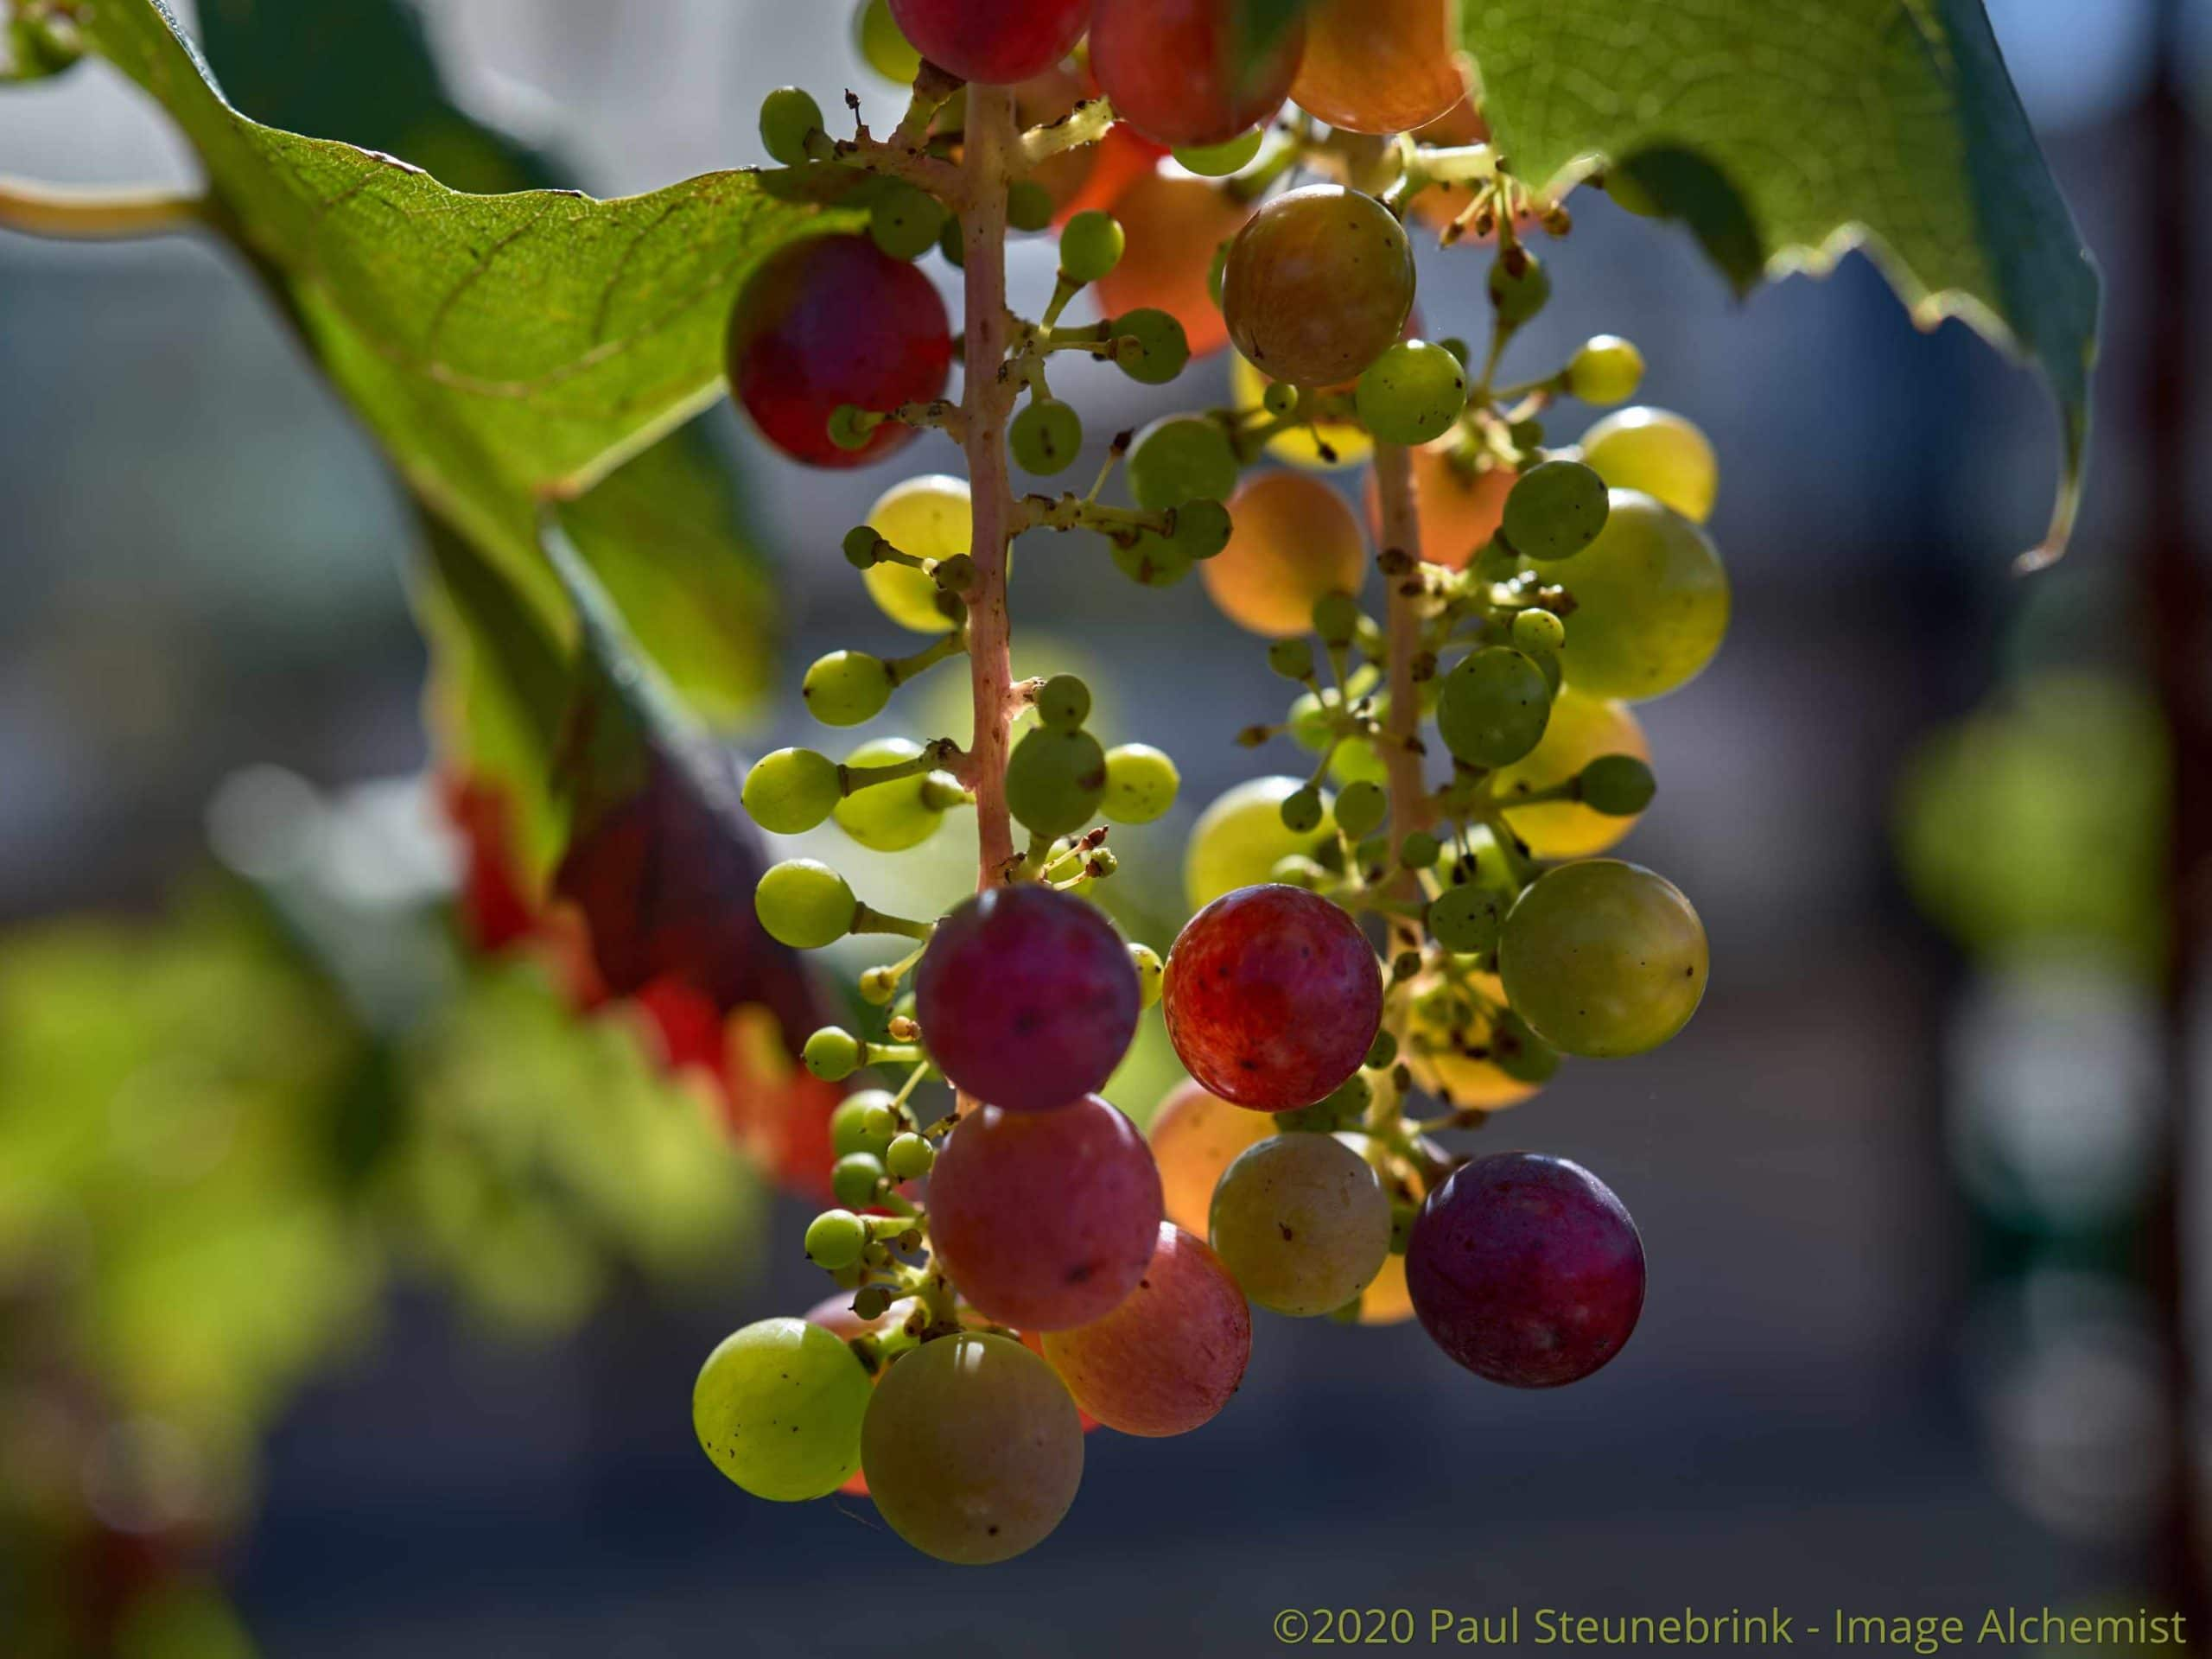 grapes in september, without style